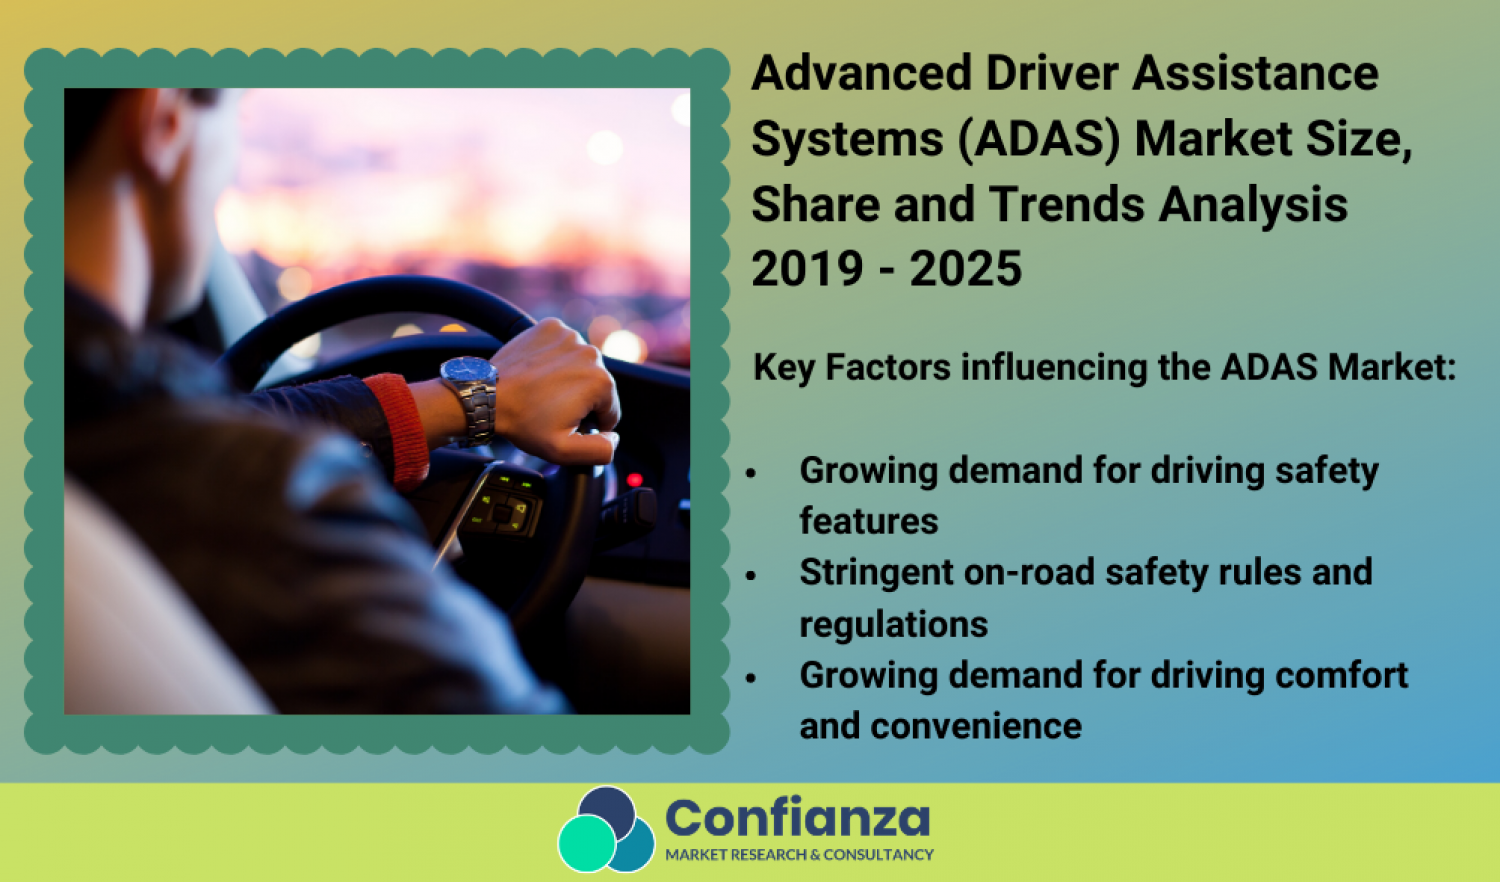 Advanced Driver Assistance Systems (ADAS) Market Size, Share and Trends Analysis 2019 - 2025 Infographic